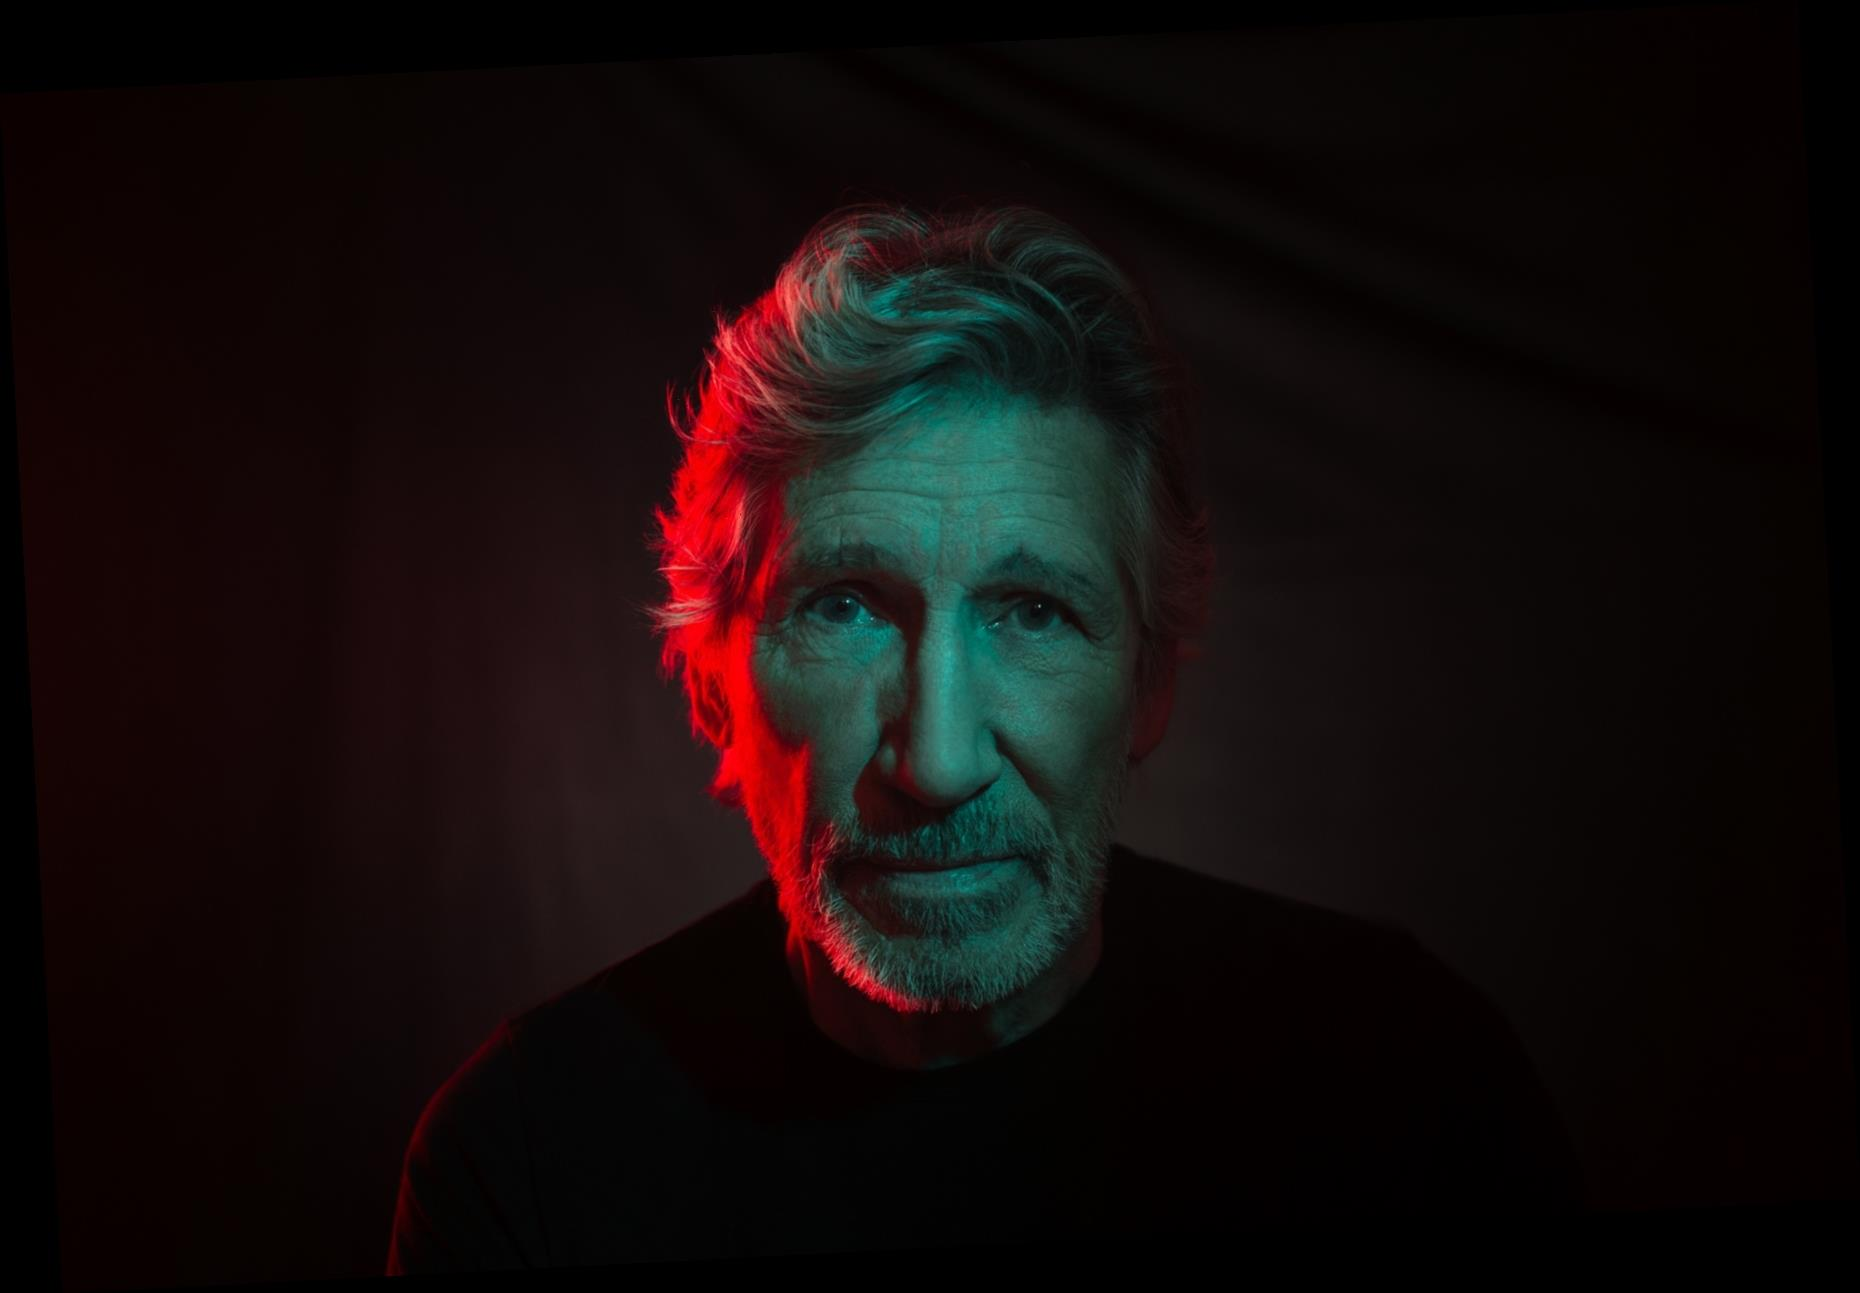 Roger Waters on Life in Isolation, His Postponed Tour, and More